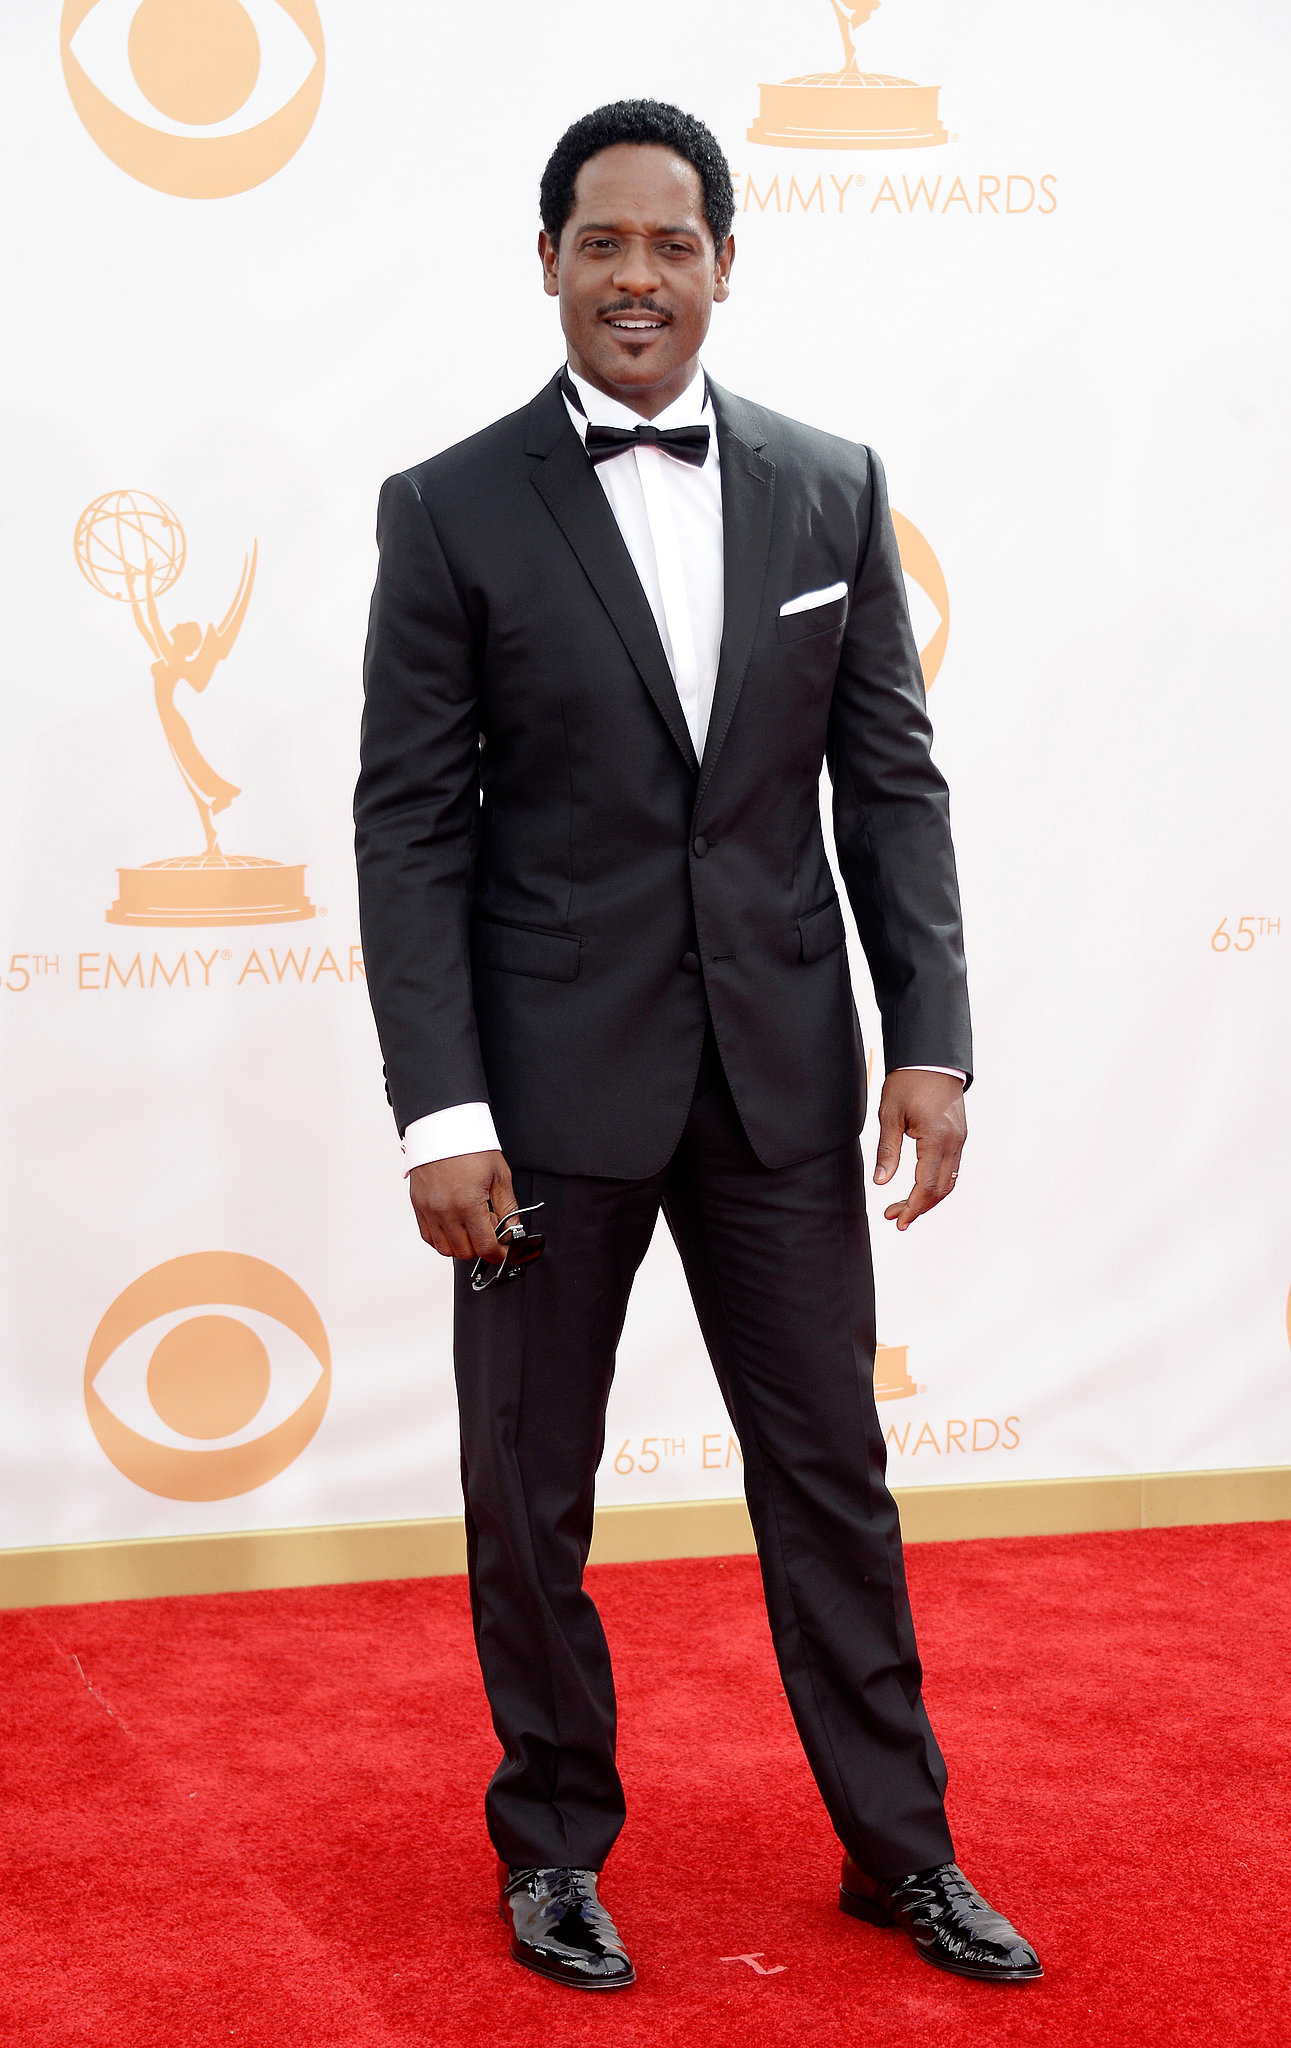 Actor Blair Underwood hit the Emmys red carpet.